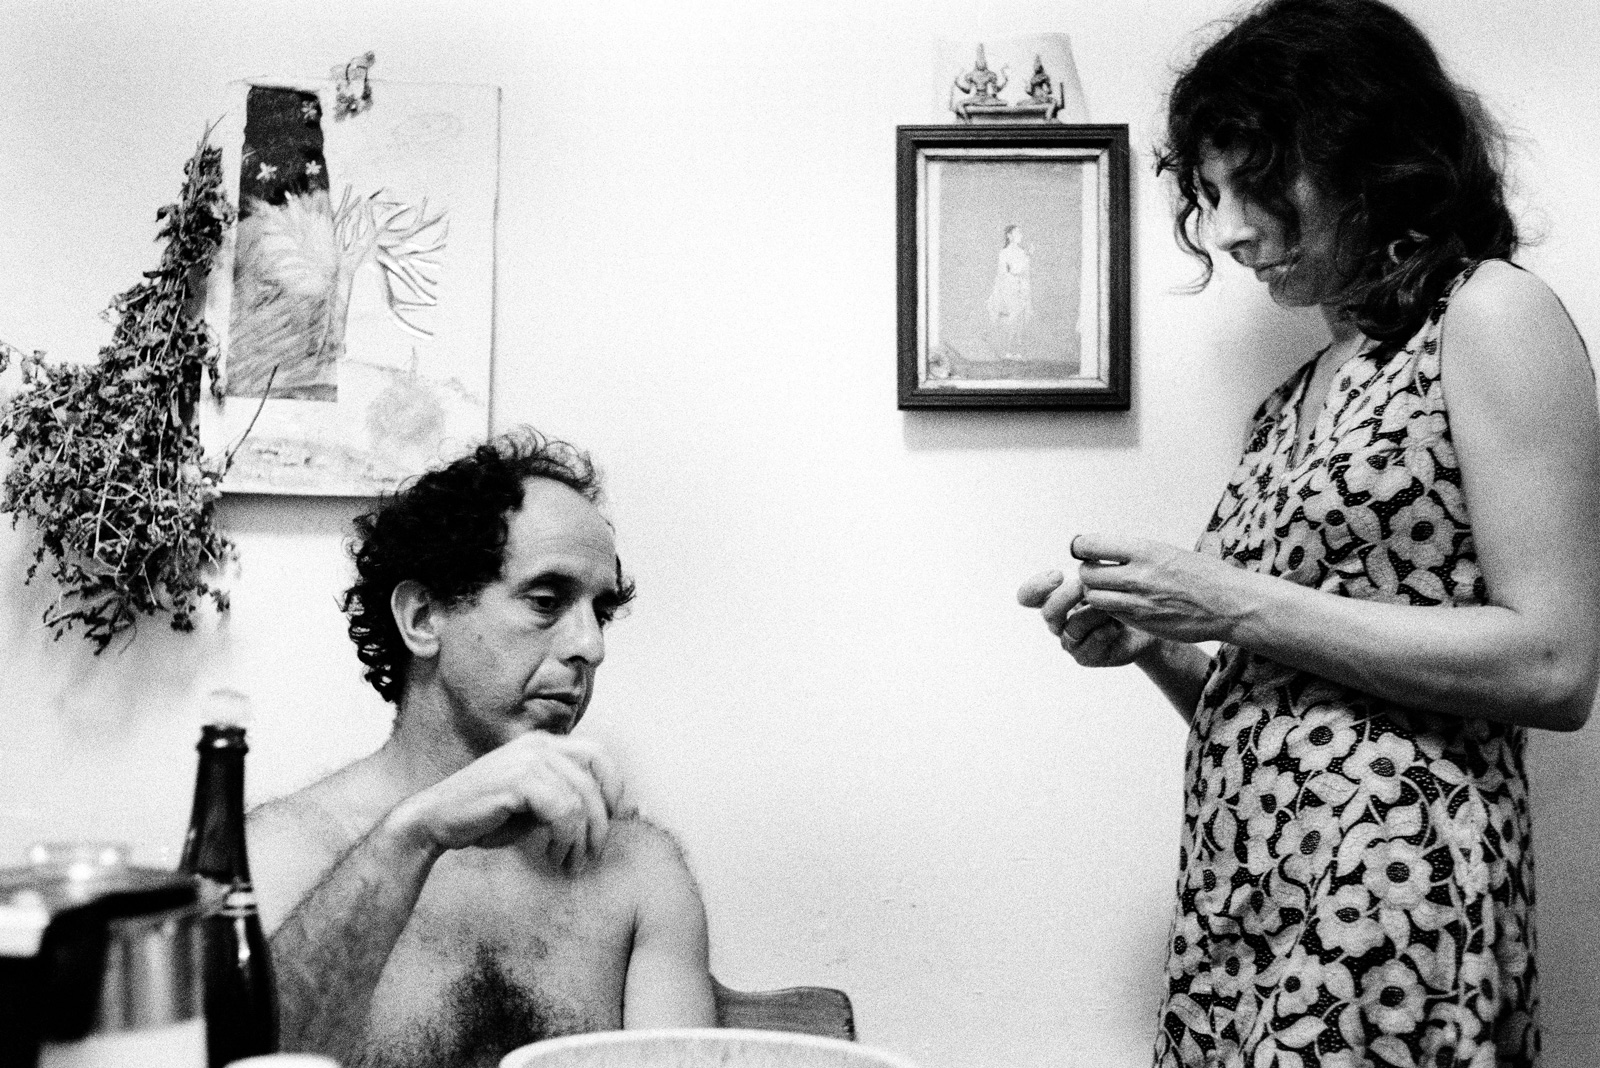 Robert Frank and Mary Frank, at their home on West 86th Street, New York City, 1969